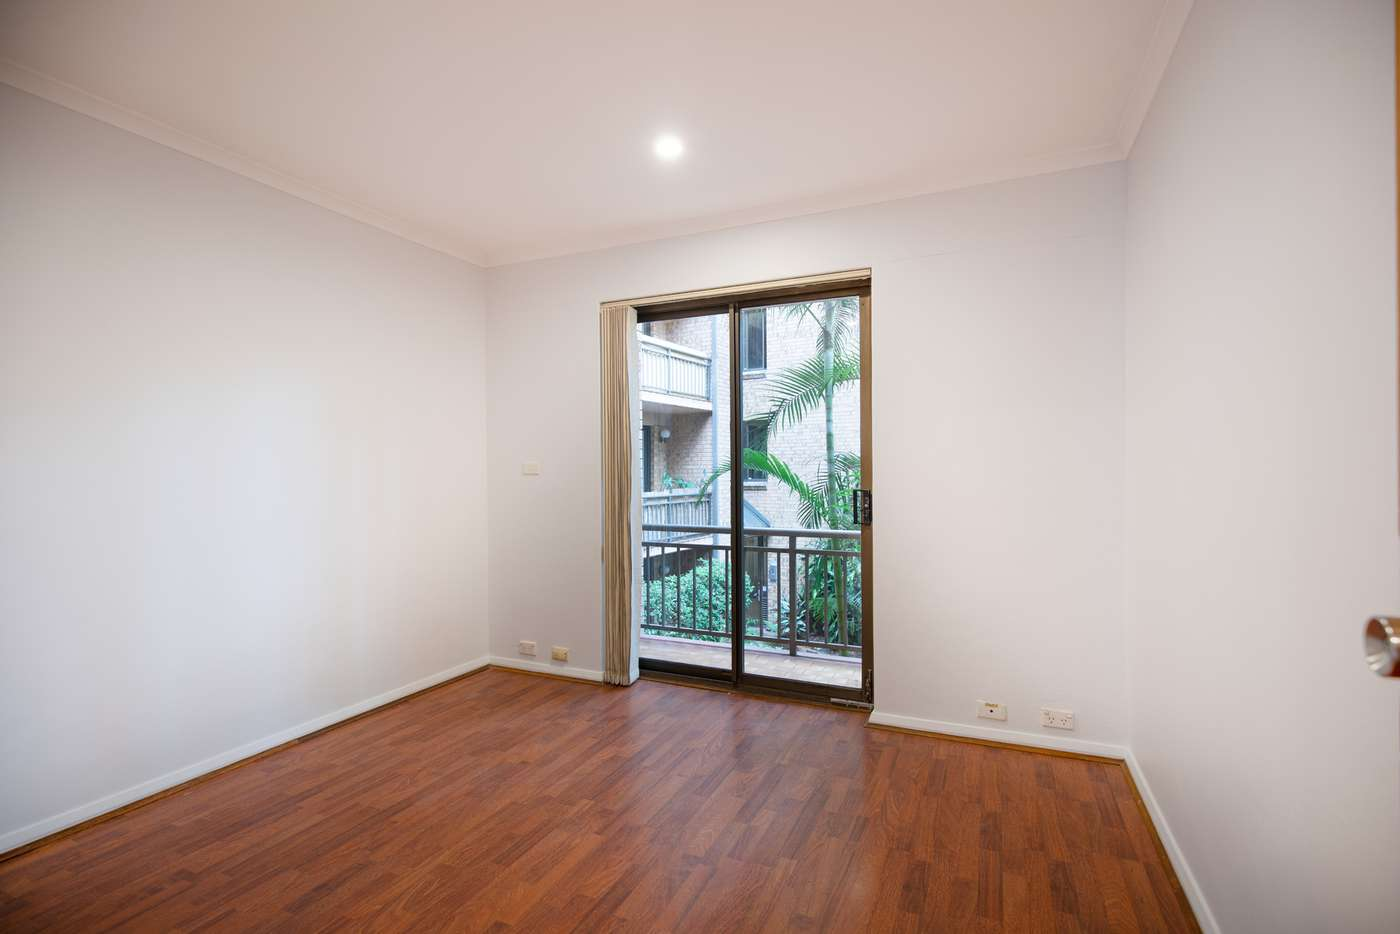 Sixth view of Homely apartment listing, 11/5-13 Hutchinson Street, Surry Hills NSW 2010